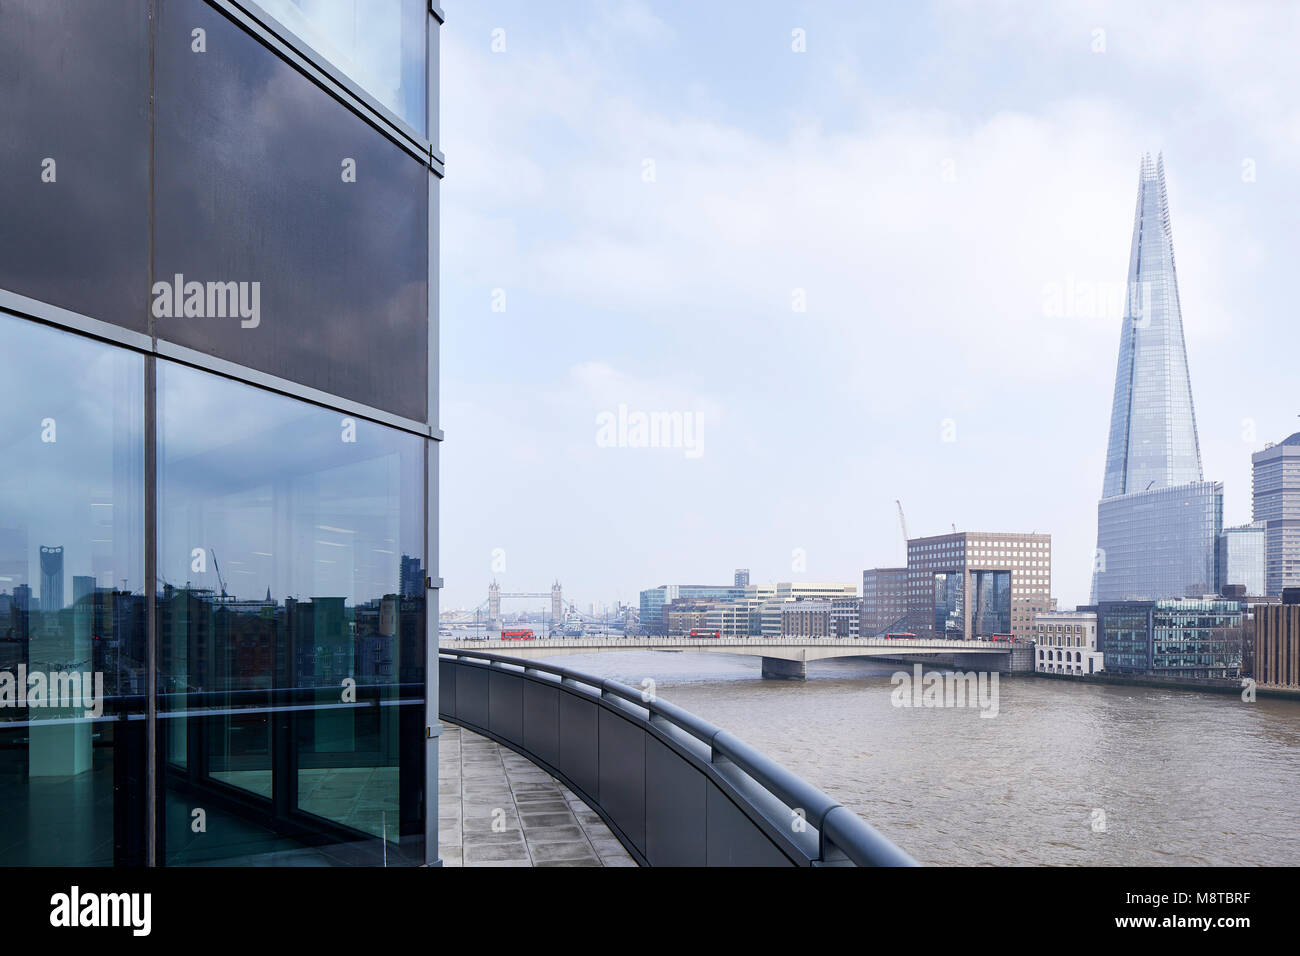 Exterior view towards The Shard and London Bridge. The River Building, London, United Kingdom. Architect: Stiff - Stock Image